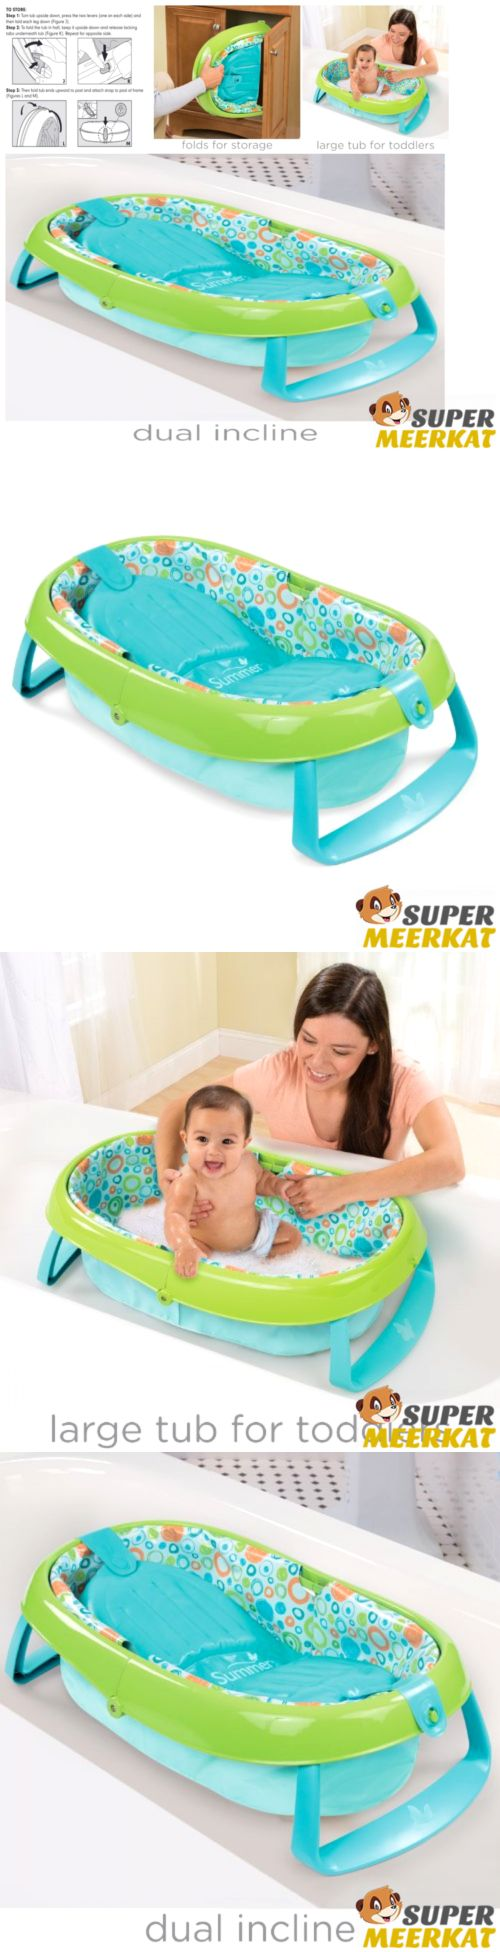 Baby Tub Seat Bath Bathtub Shower Spa Wash Infant Newborn Girl Boy ...